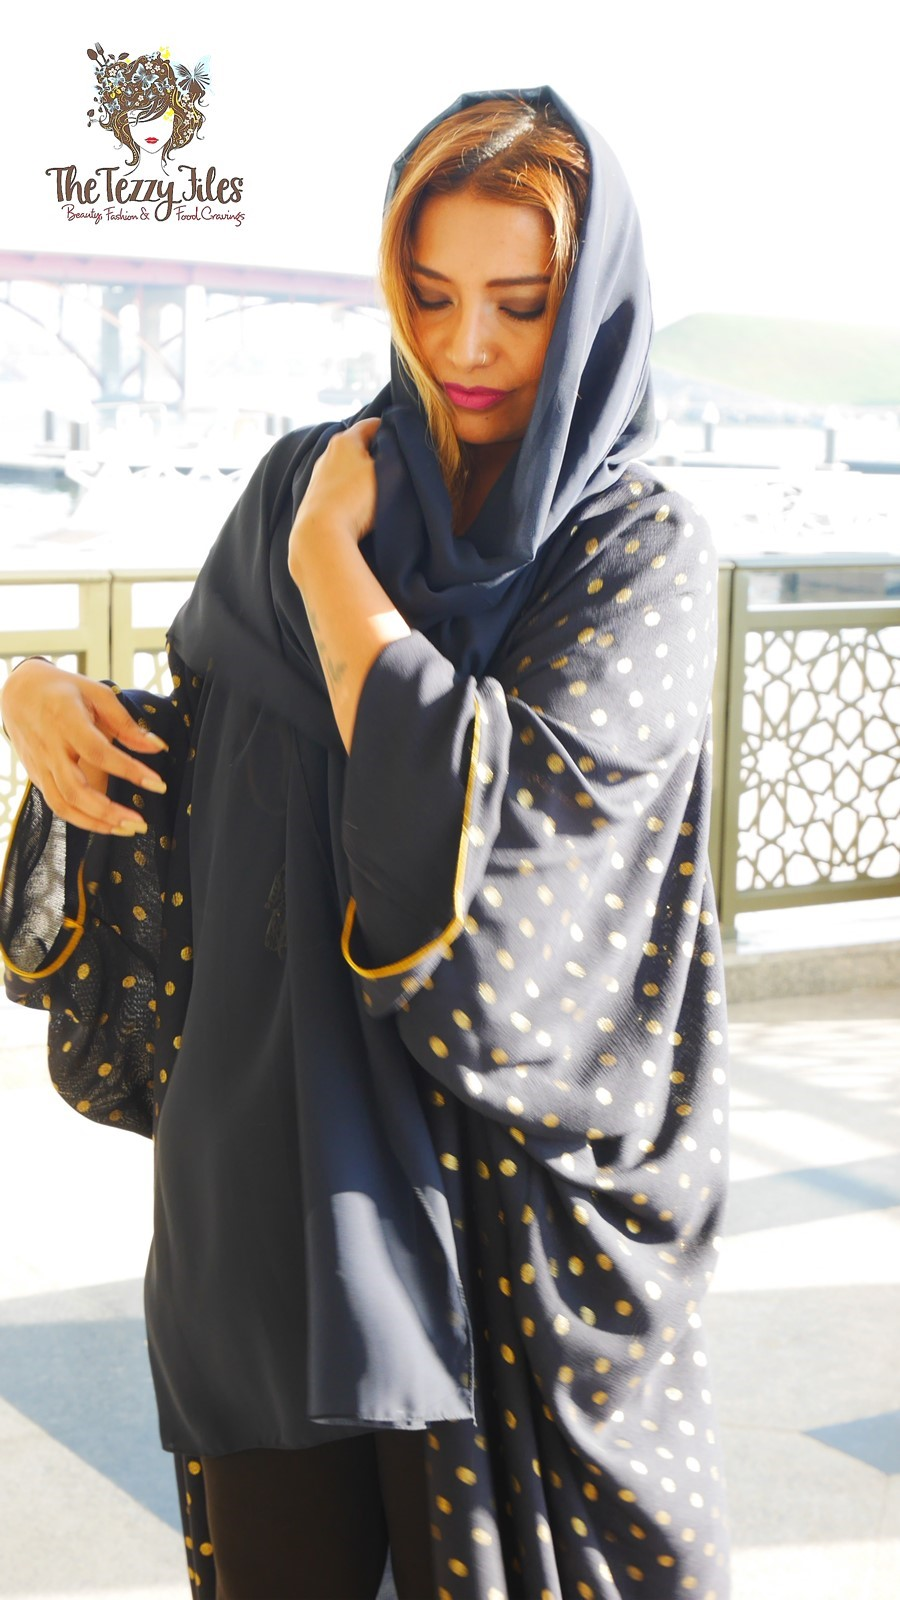 abaya-fashion-blogger-blog-rock-the-abaya-arabic-fashion-dubai-blog-uae-beauty-hair-makeup-blog-3